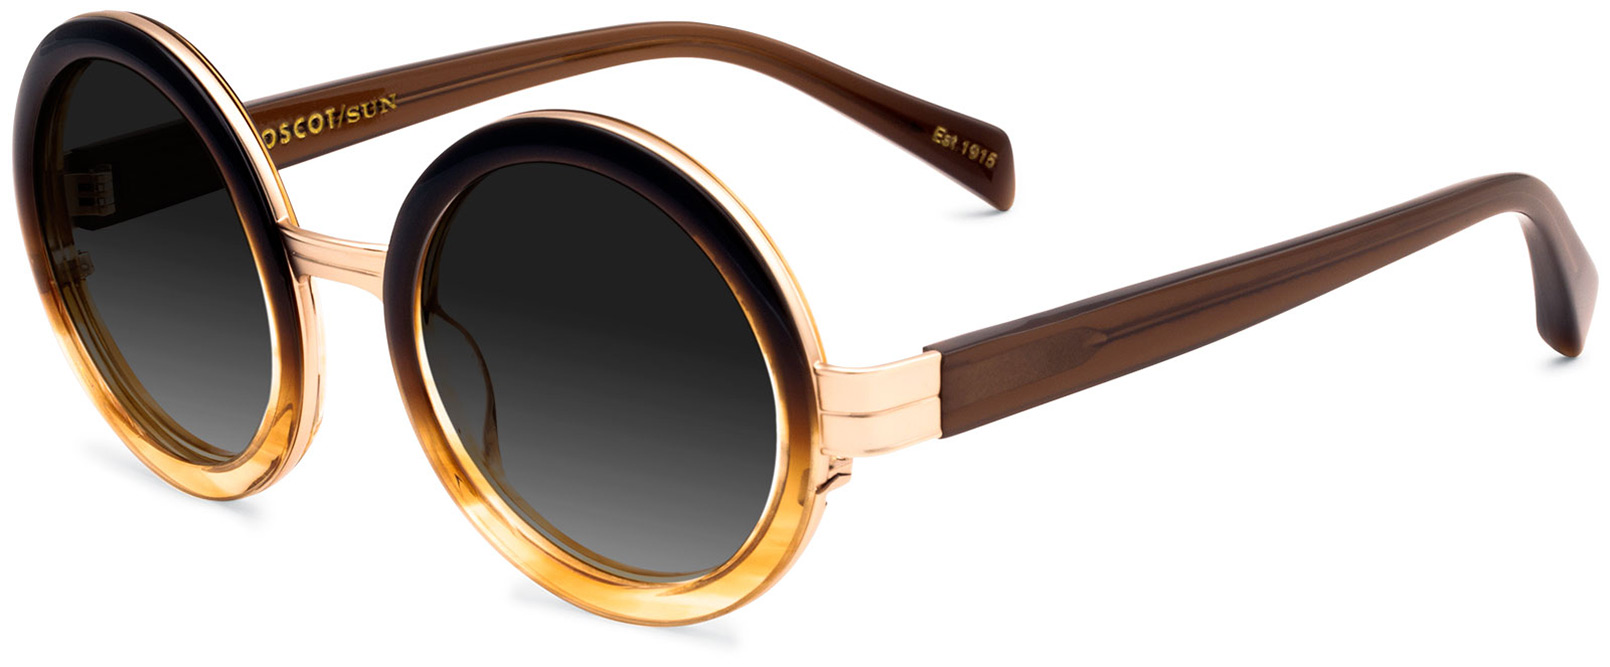 moscot-2013-sun-collection-sunglasses-16